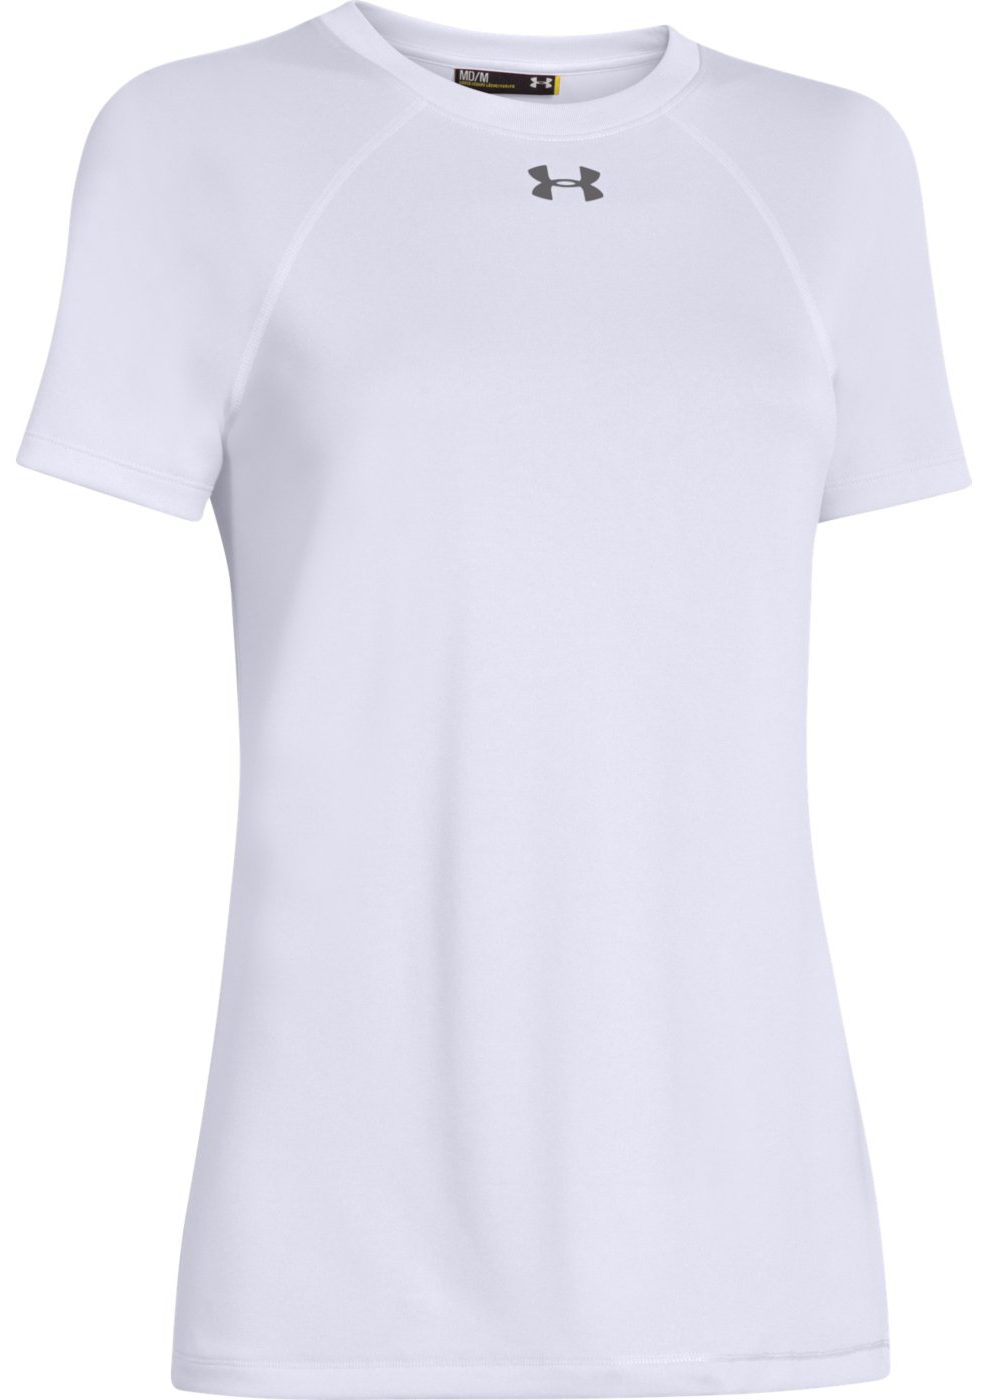 Under armour women 39 s locker t shirt for Under armour i will shirt